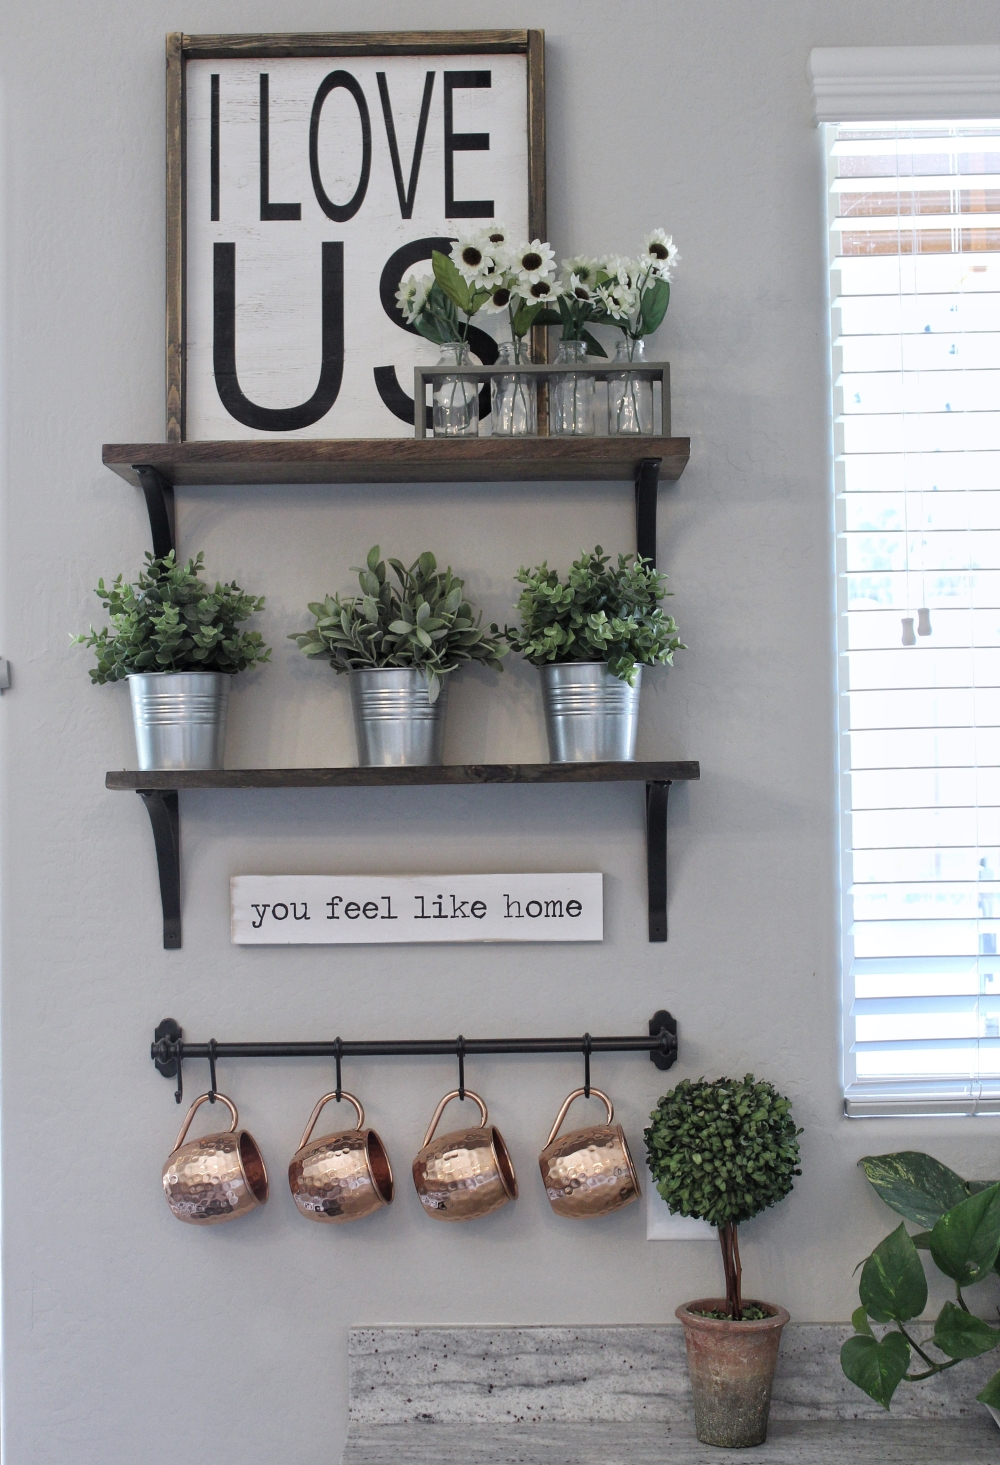 Modern Farmhouse shelf vignette with hand-painted signs. Copper Moscow Mule mugs.